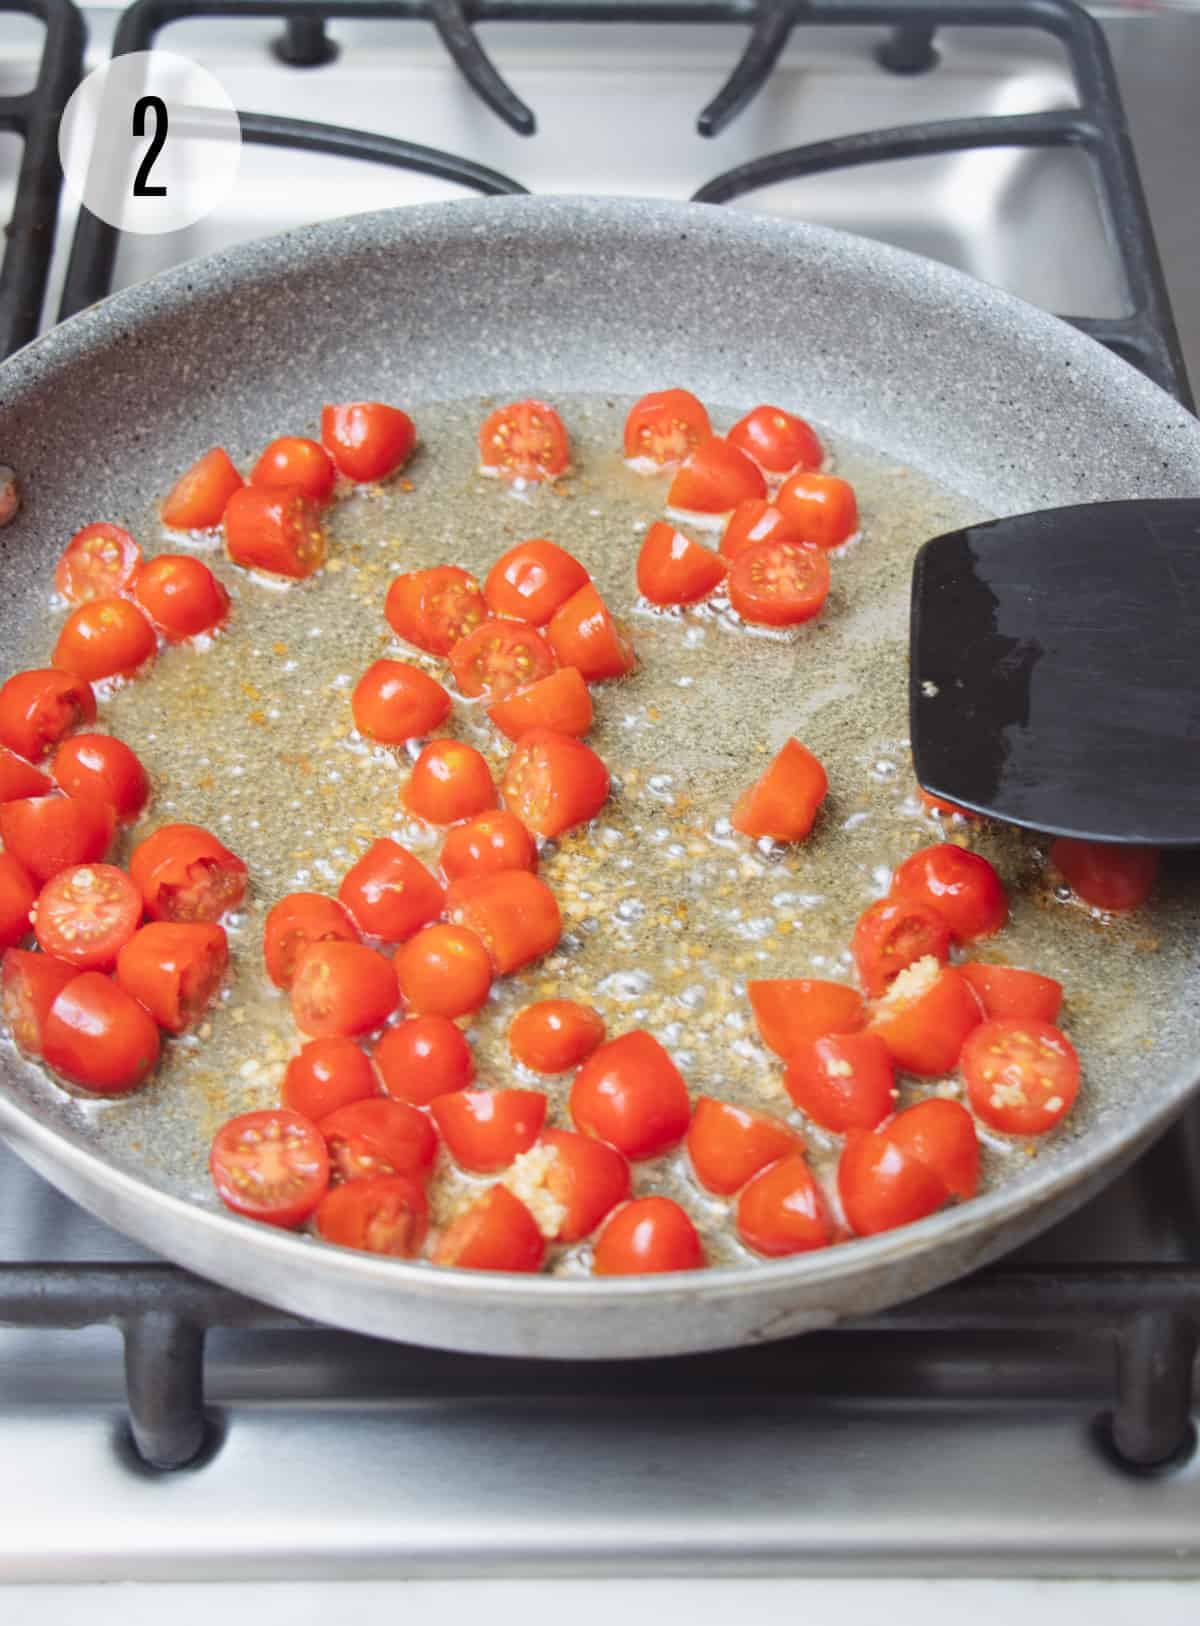 Sliced grape tomatoes sauteing in bacon fat in a grey skillet with black spatula.